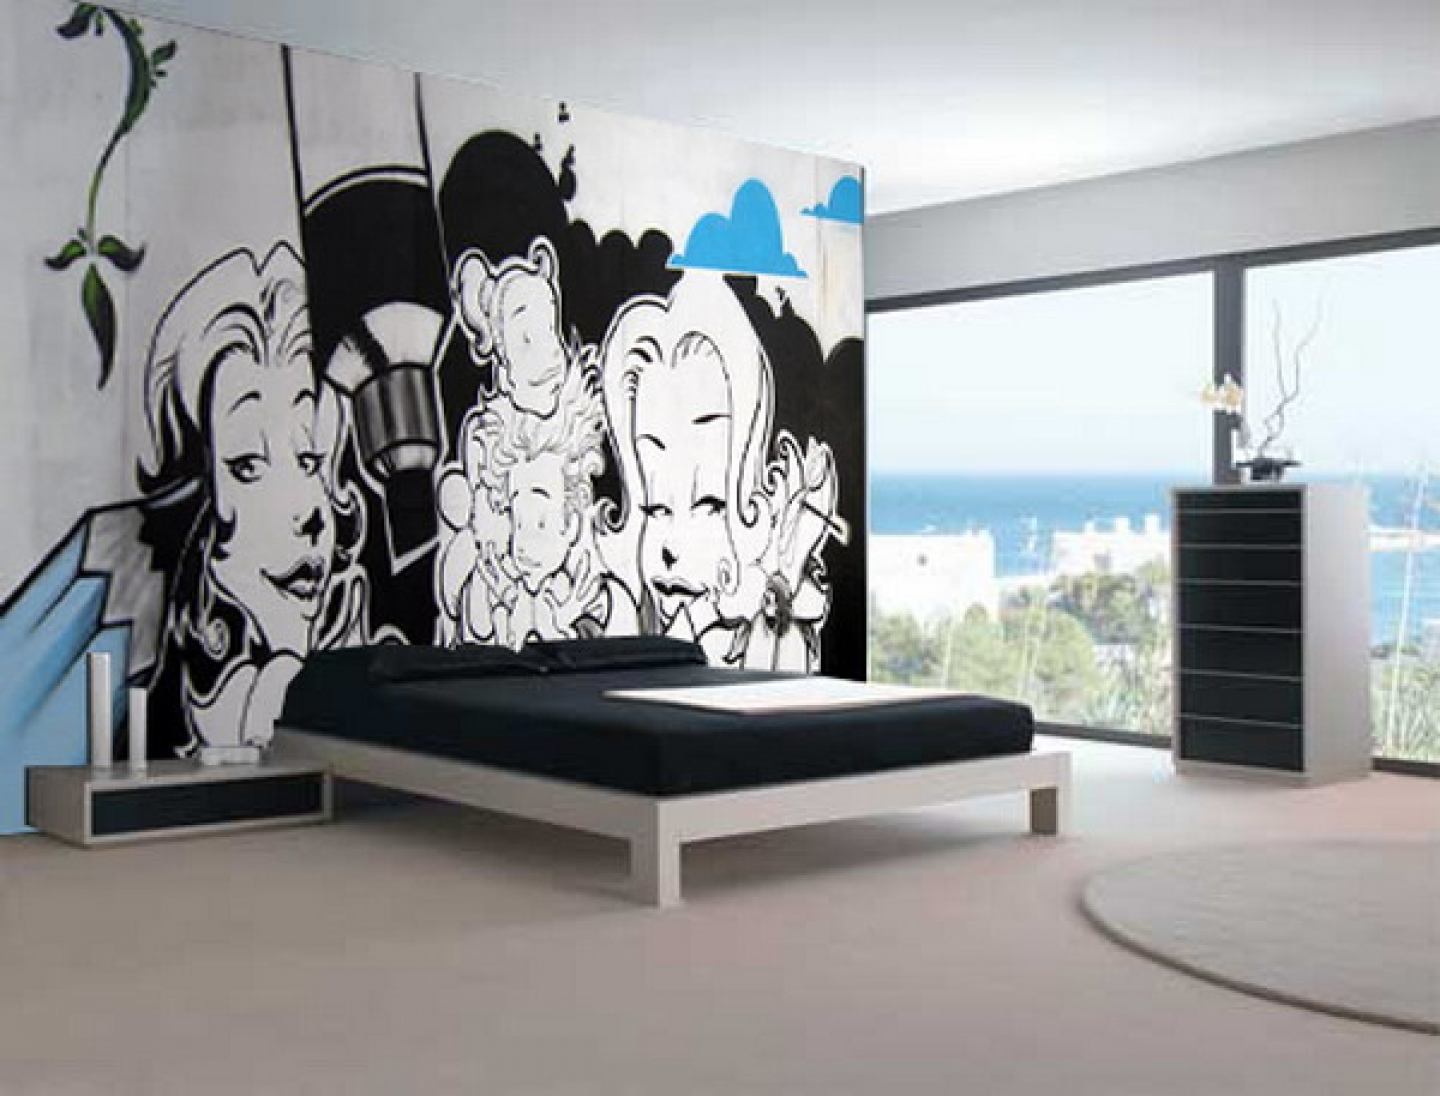 Graffiti-Mural-Teen-Bedroom-Interior-Design-Ideas-Graffiti-